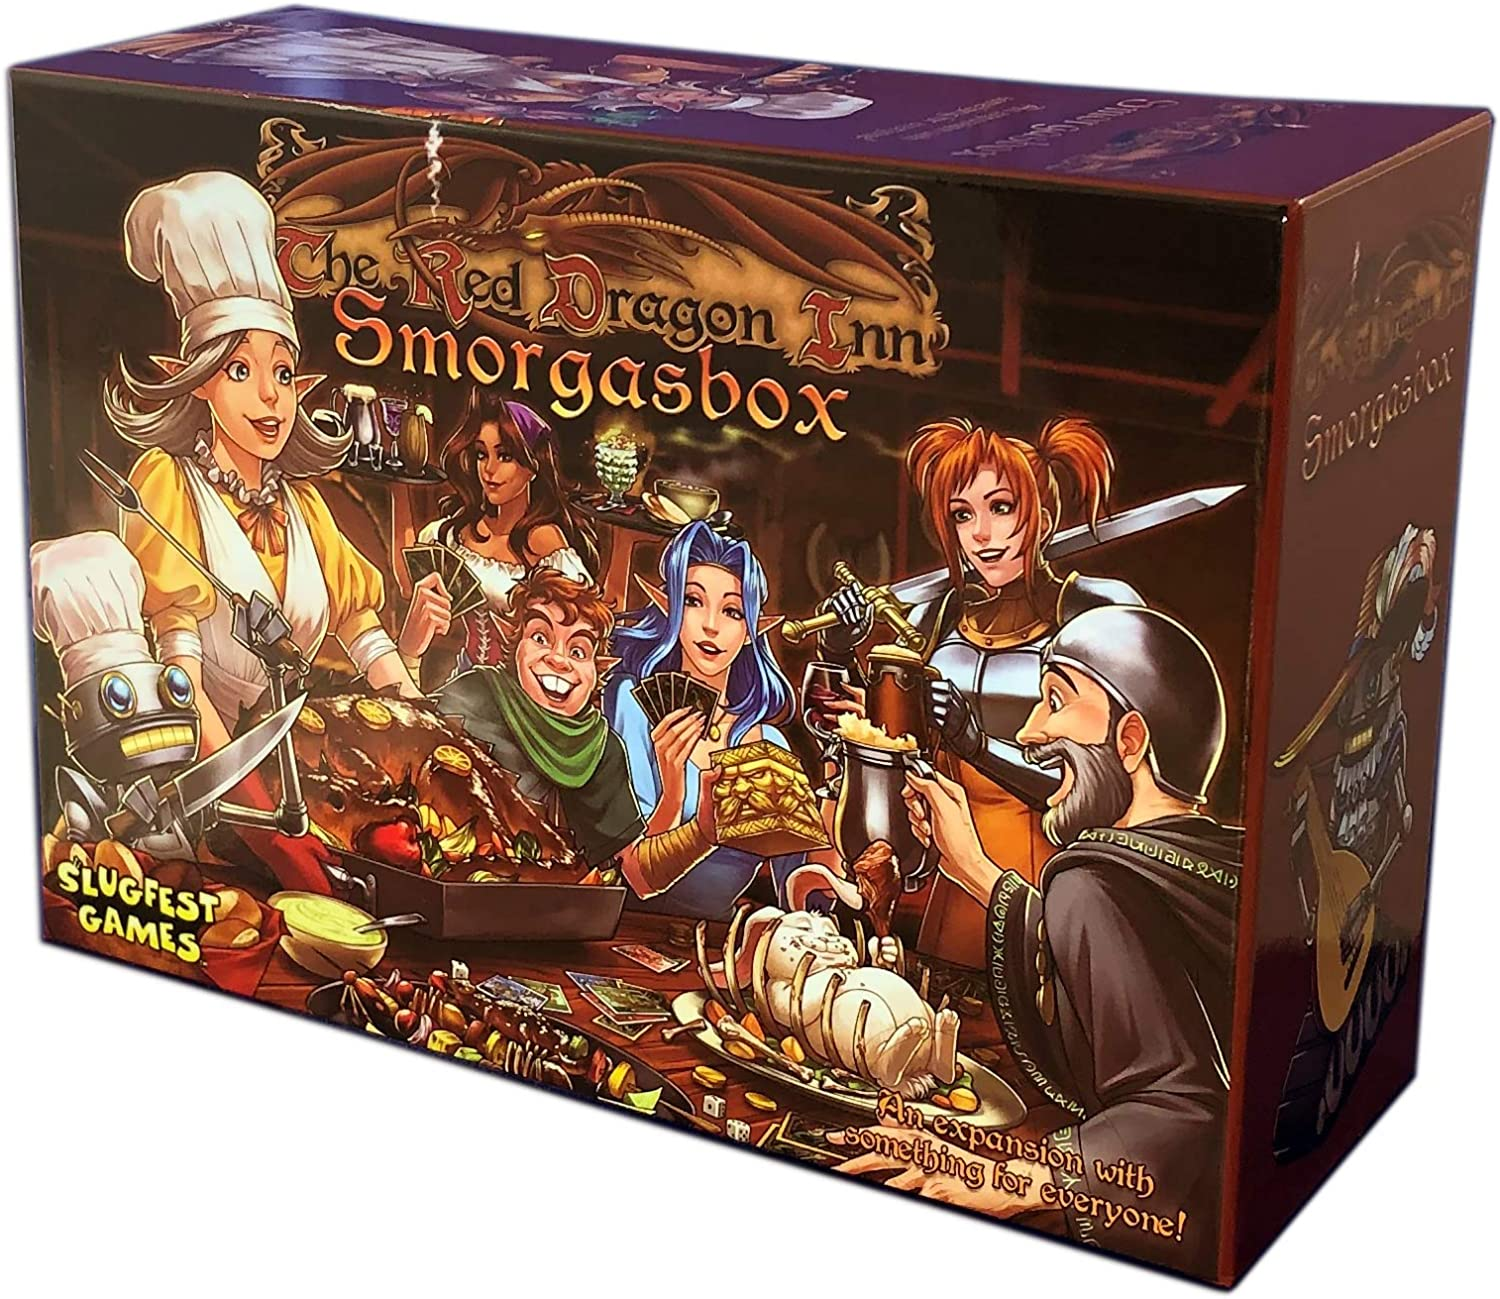 Red Dragon Inn: Smorgasbox